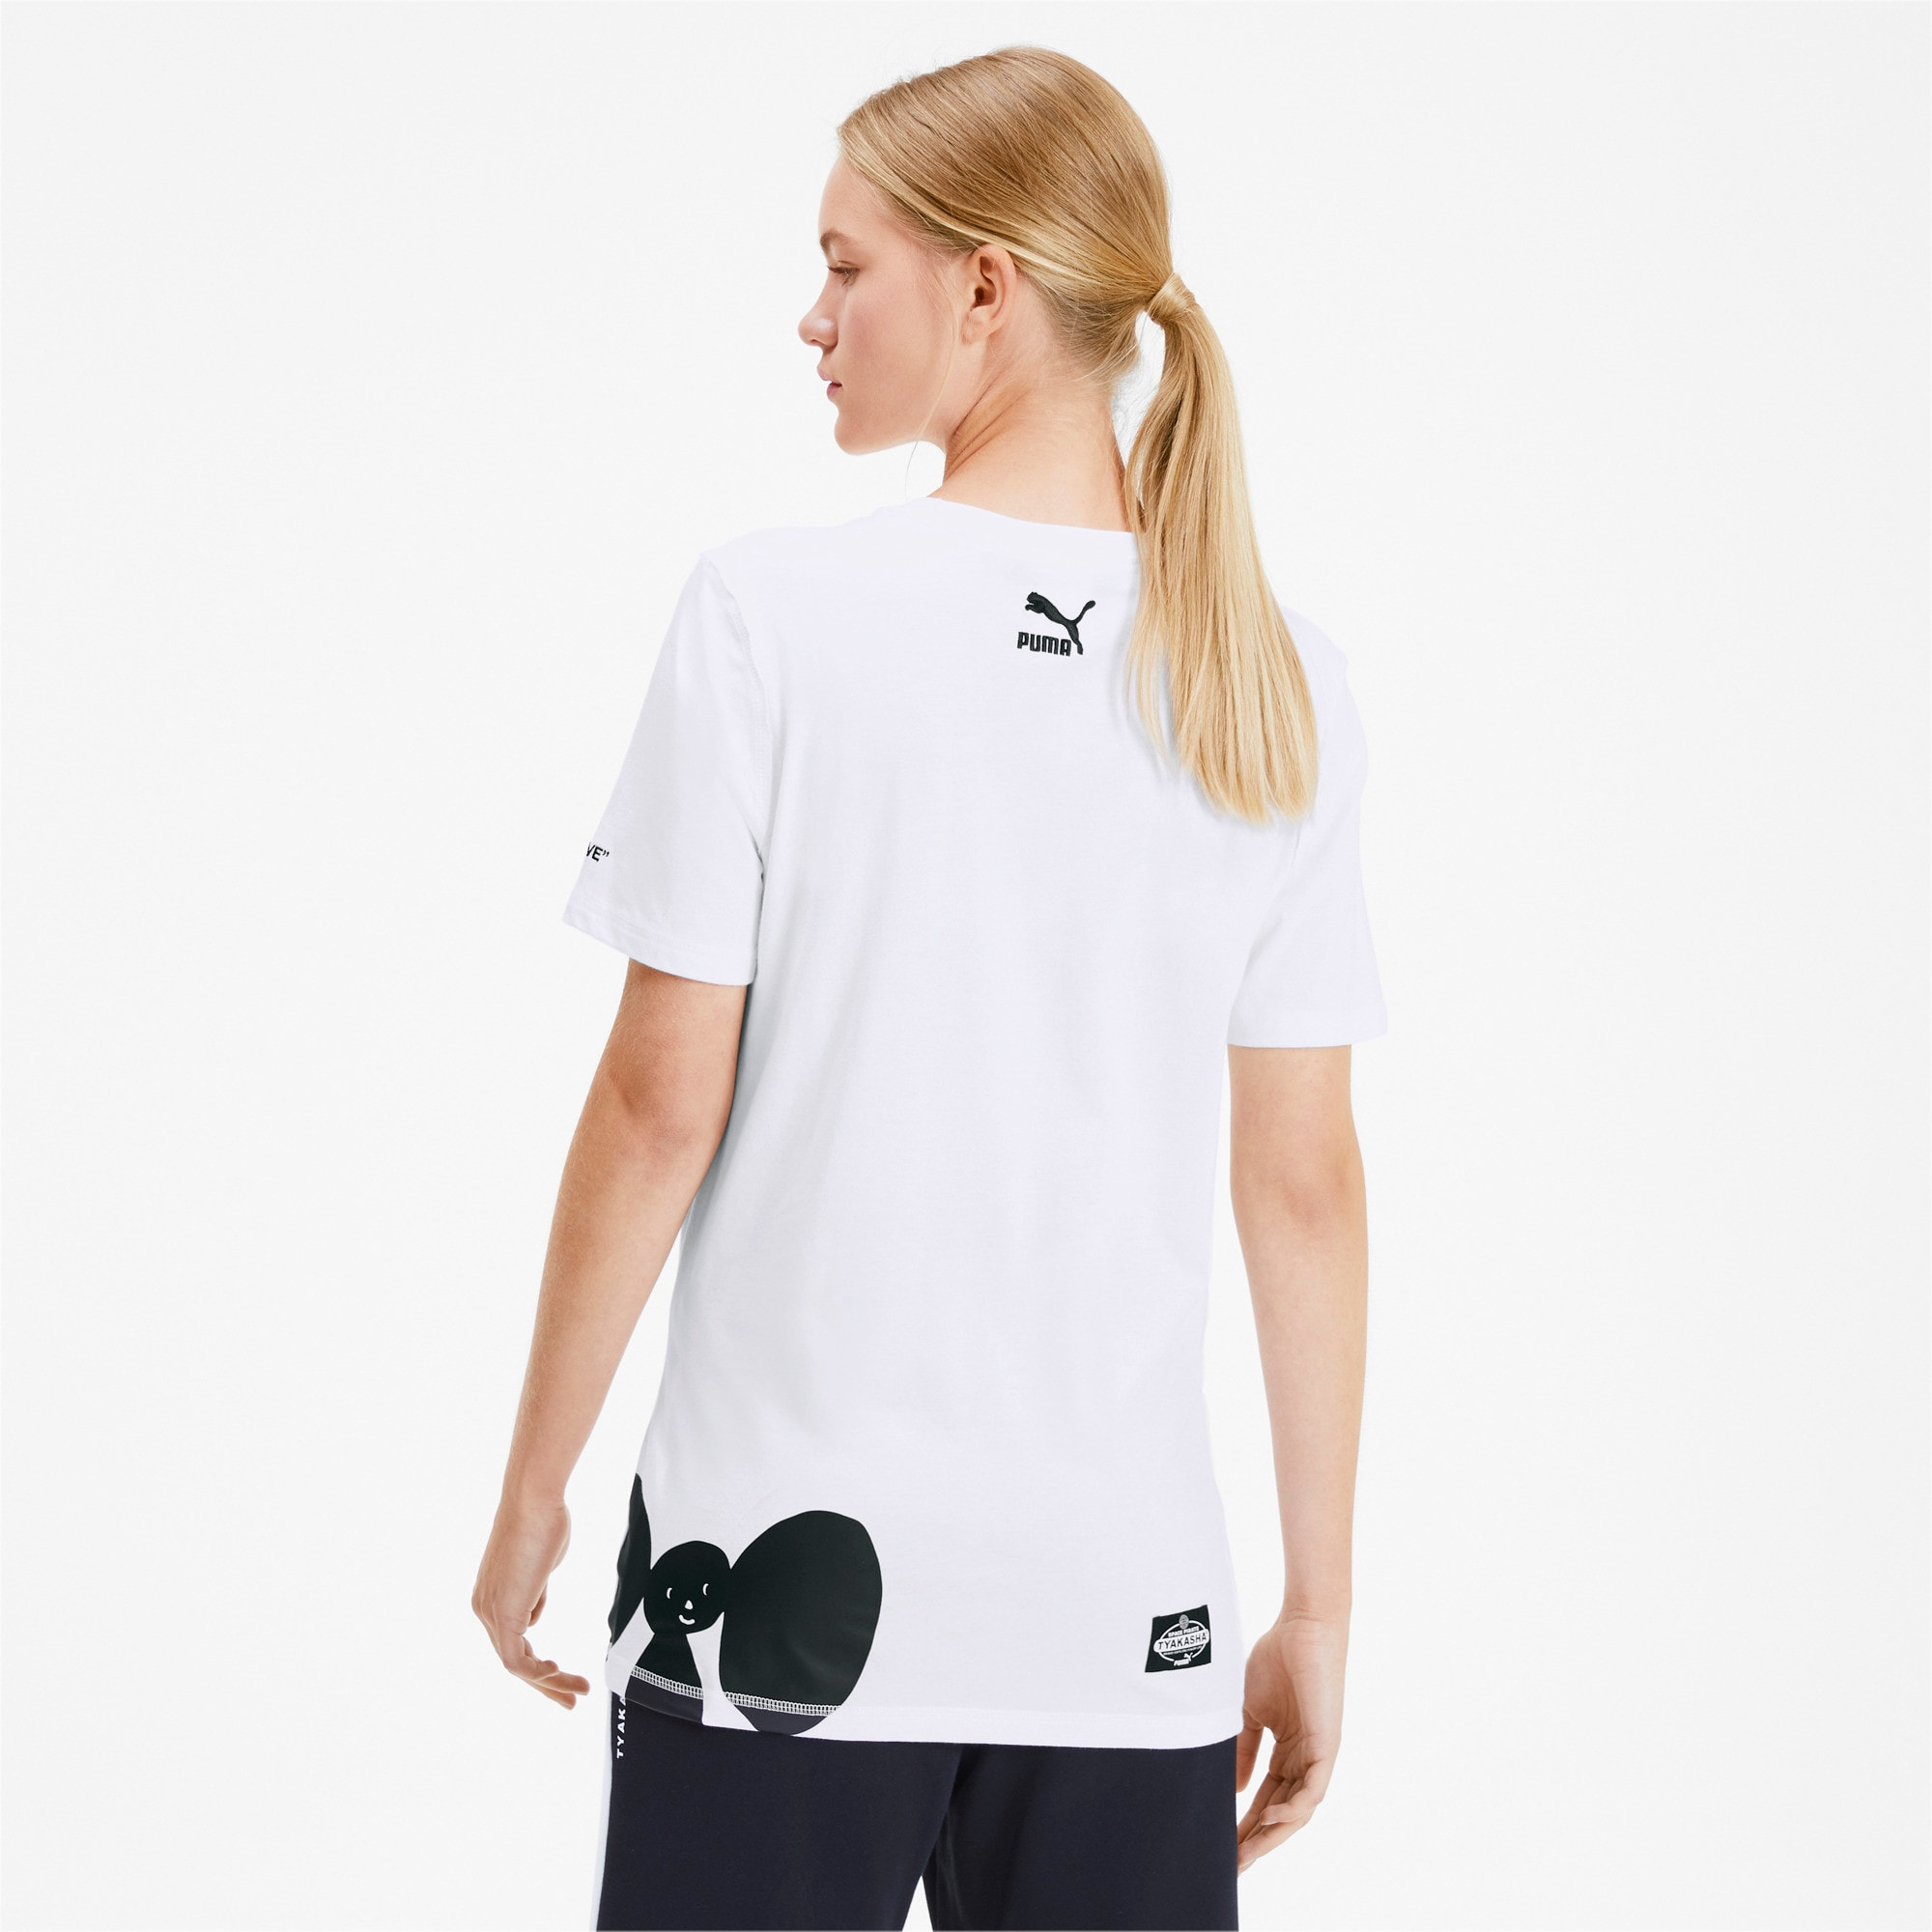 Thumbnail 3 of PUMA x TYAKASHA Tee, Puma White, medium